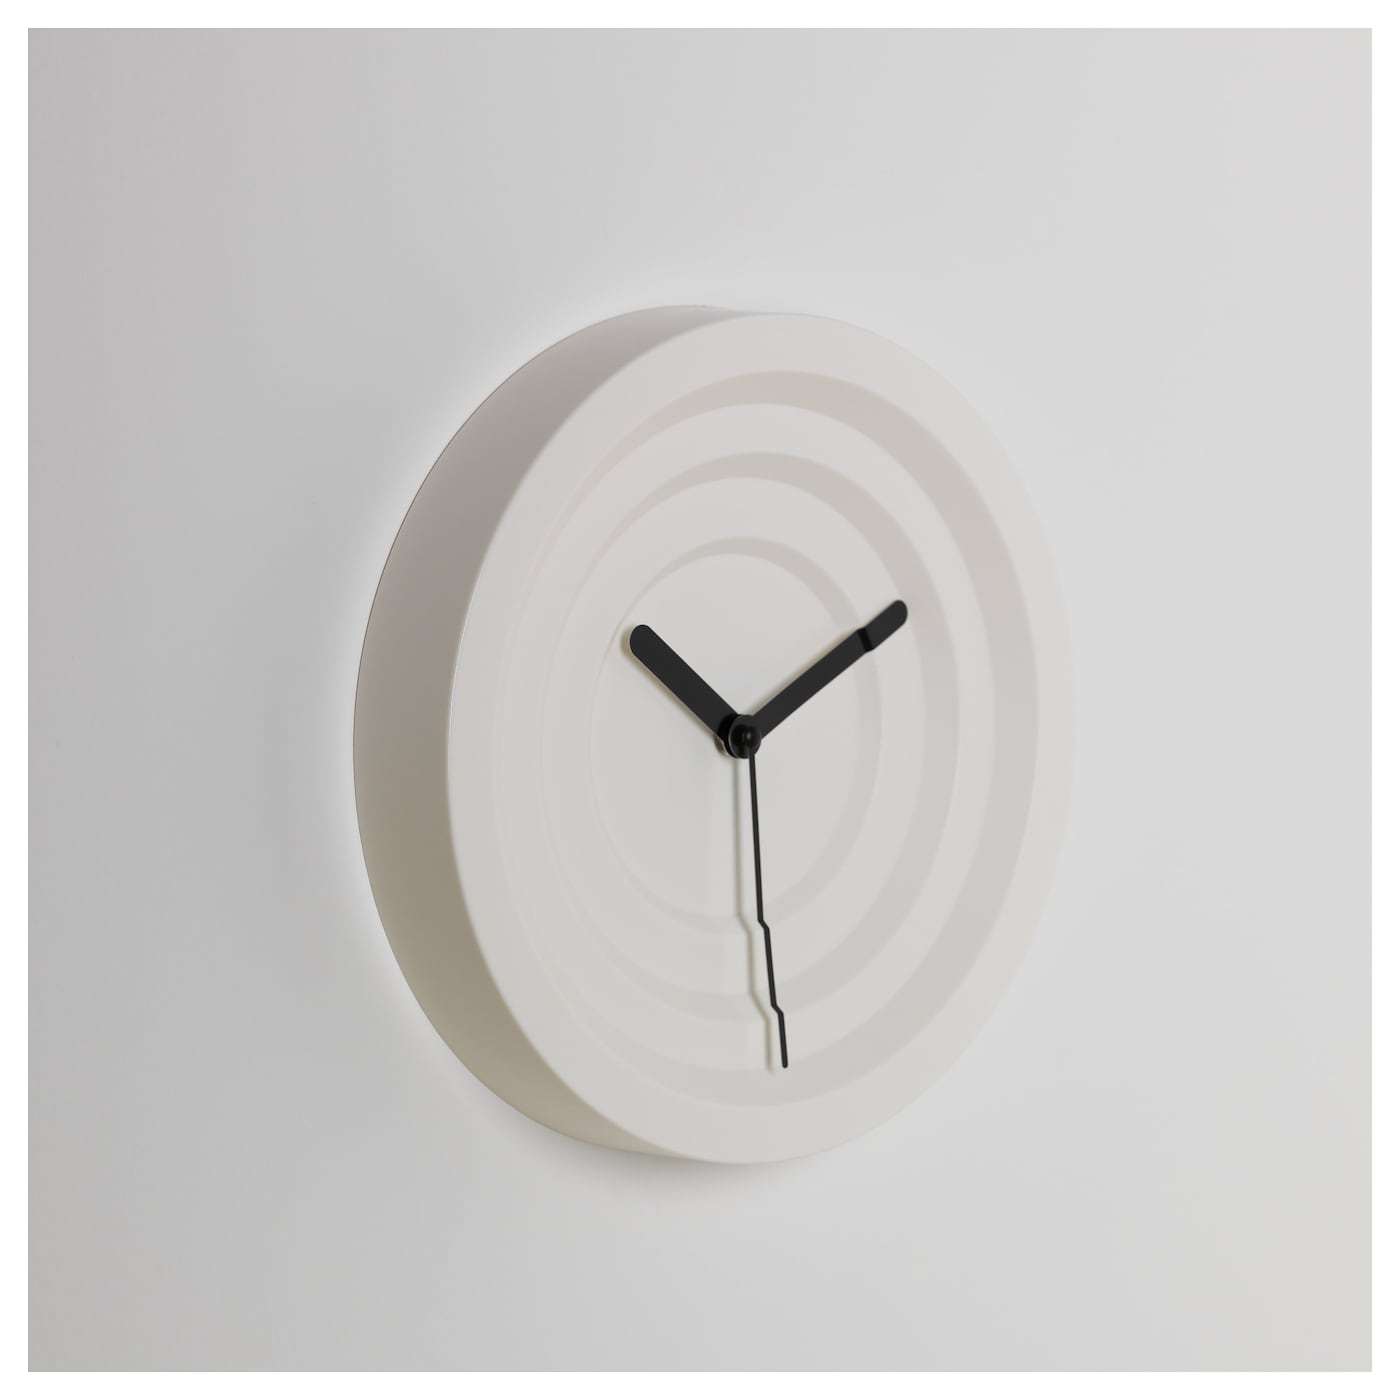 IKEA NYLLE wall clock Silent clock, the pointers move without a sound.